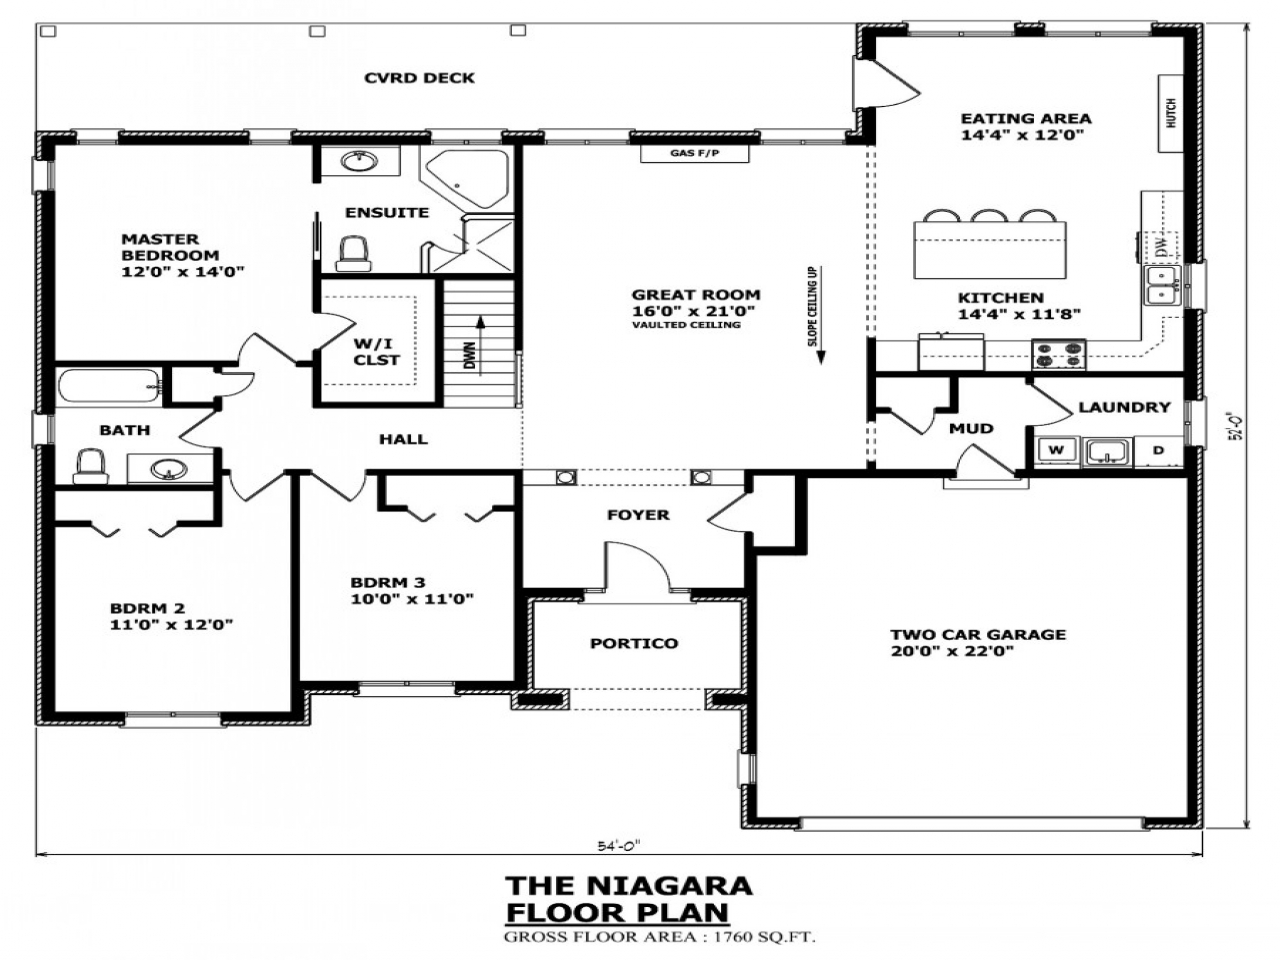 House plans canada house plans home hardware canada house for Home hardware house plans canada